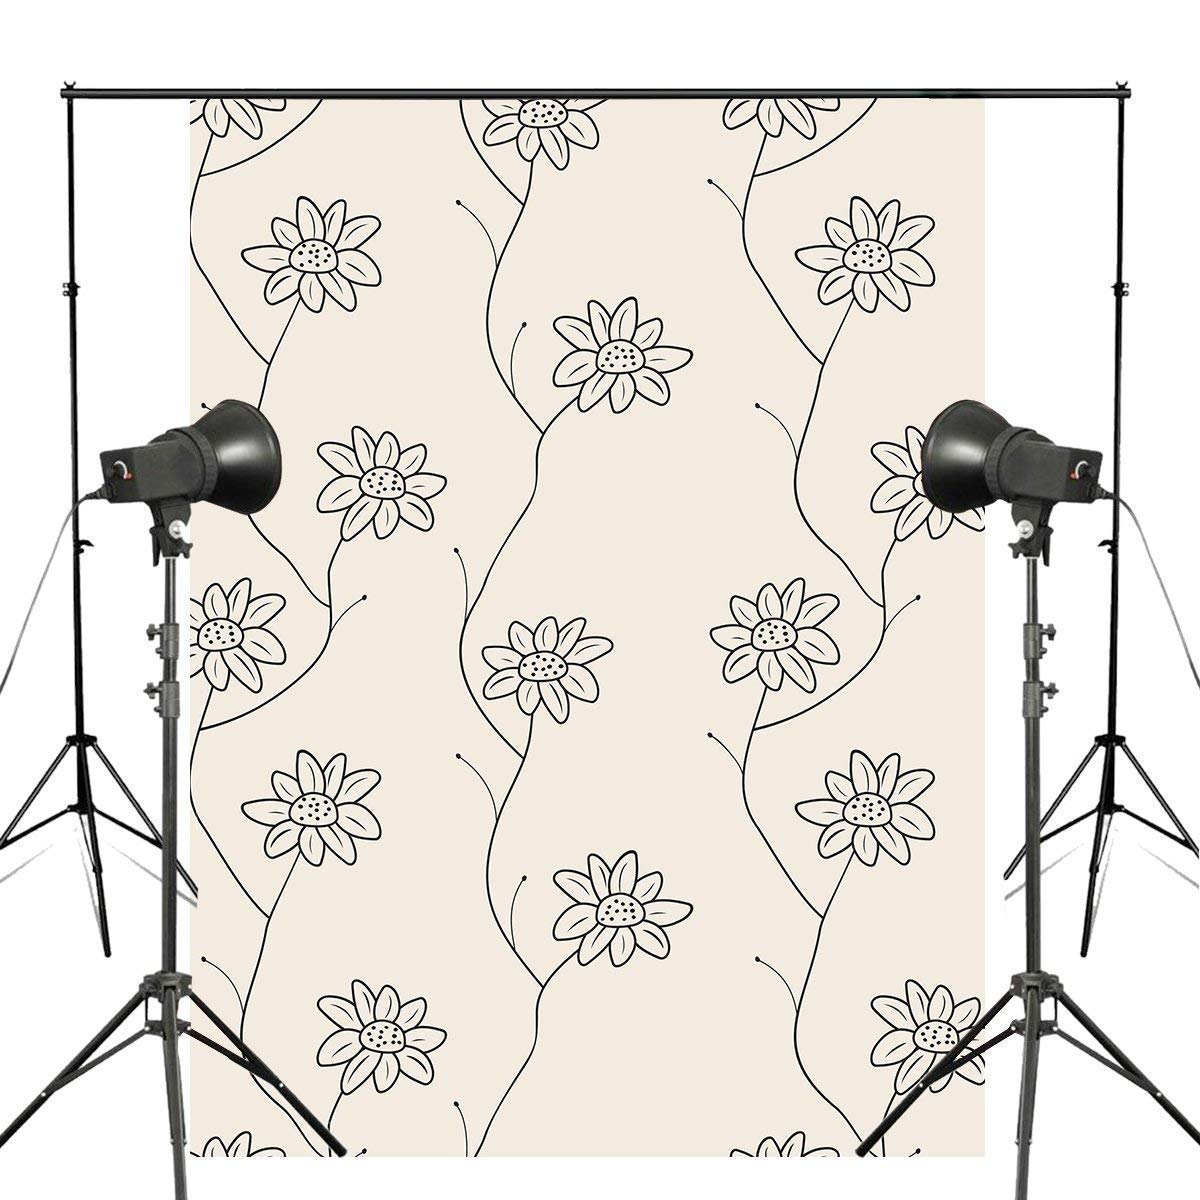 ERTIANANG 5x7ft Delicate Floral Photography Backdrop Seamless Pattern Background Plain Style Photo Studio Backdrop Wall